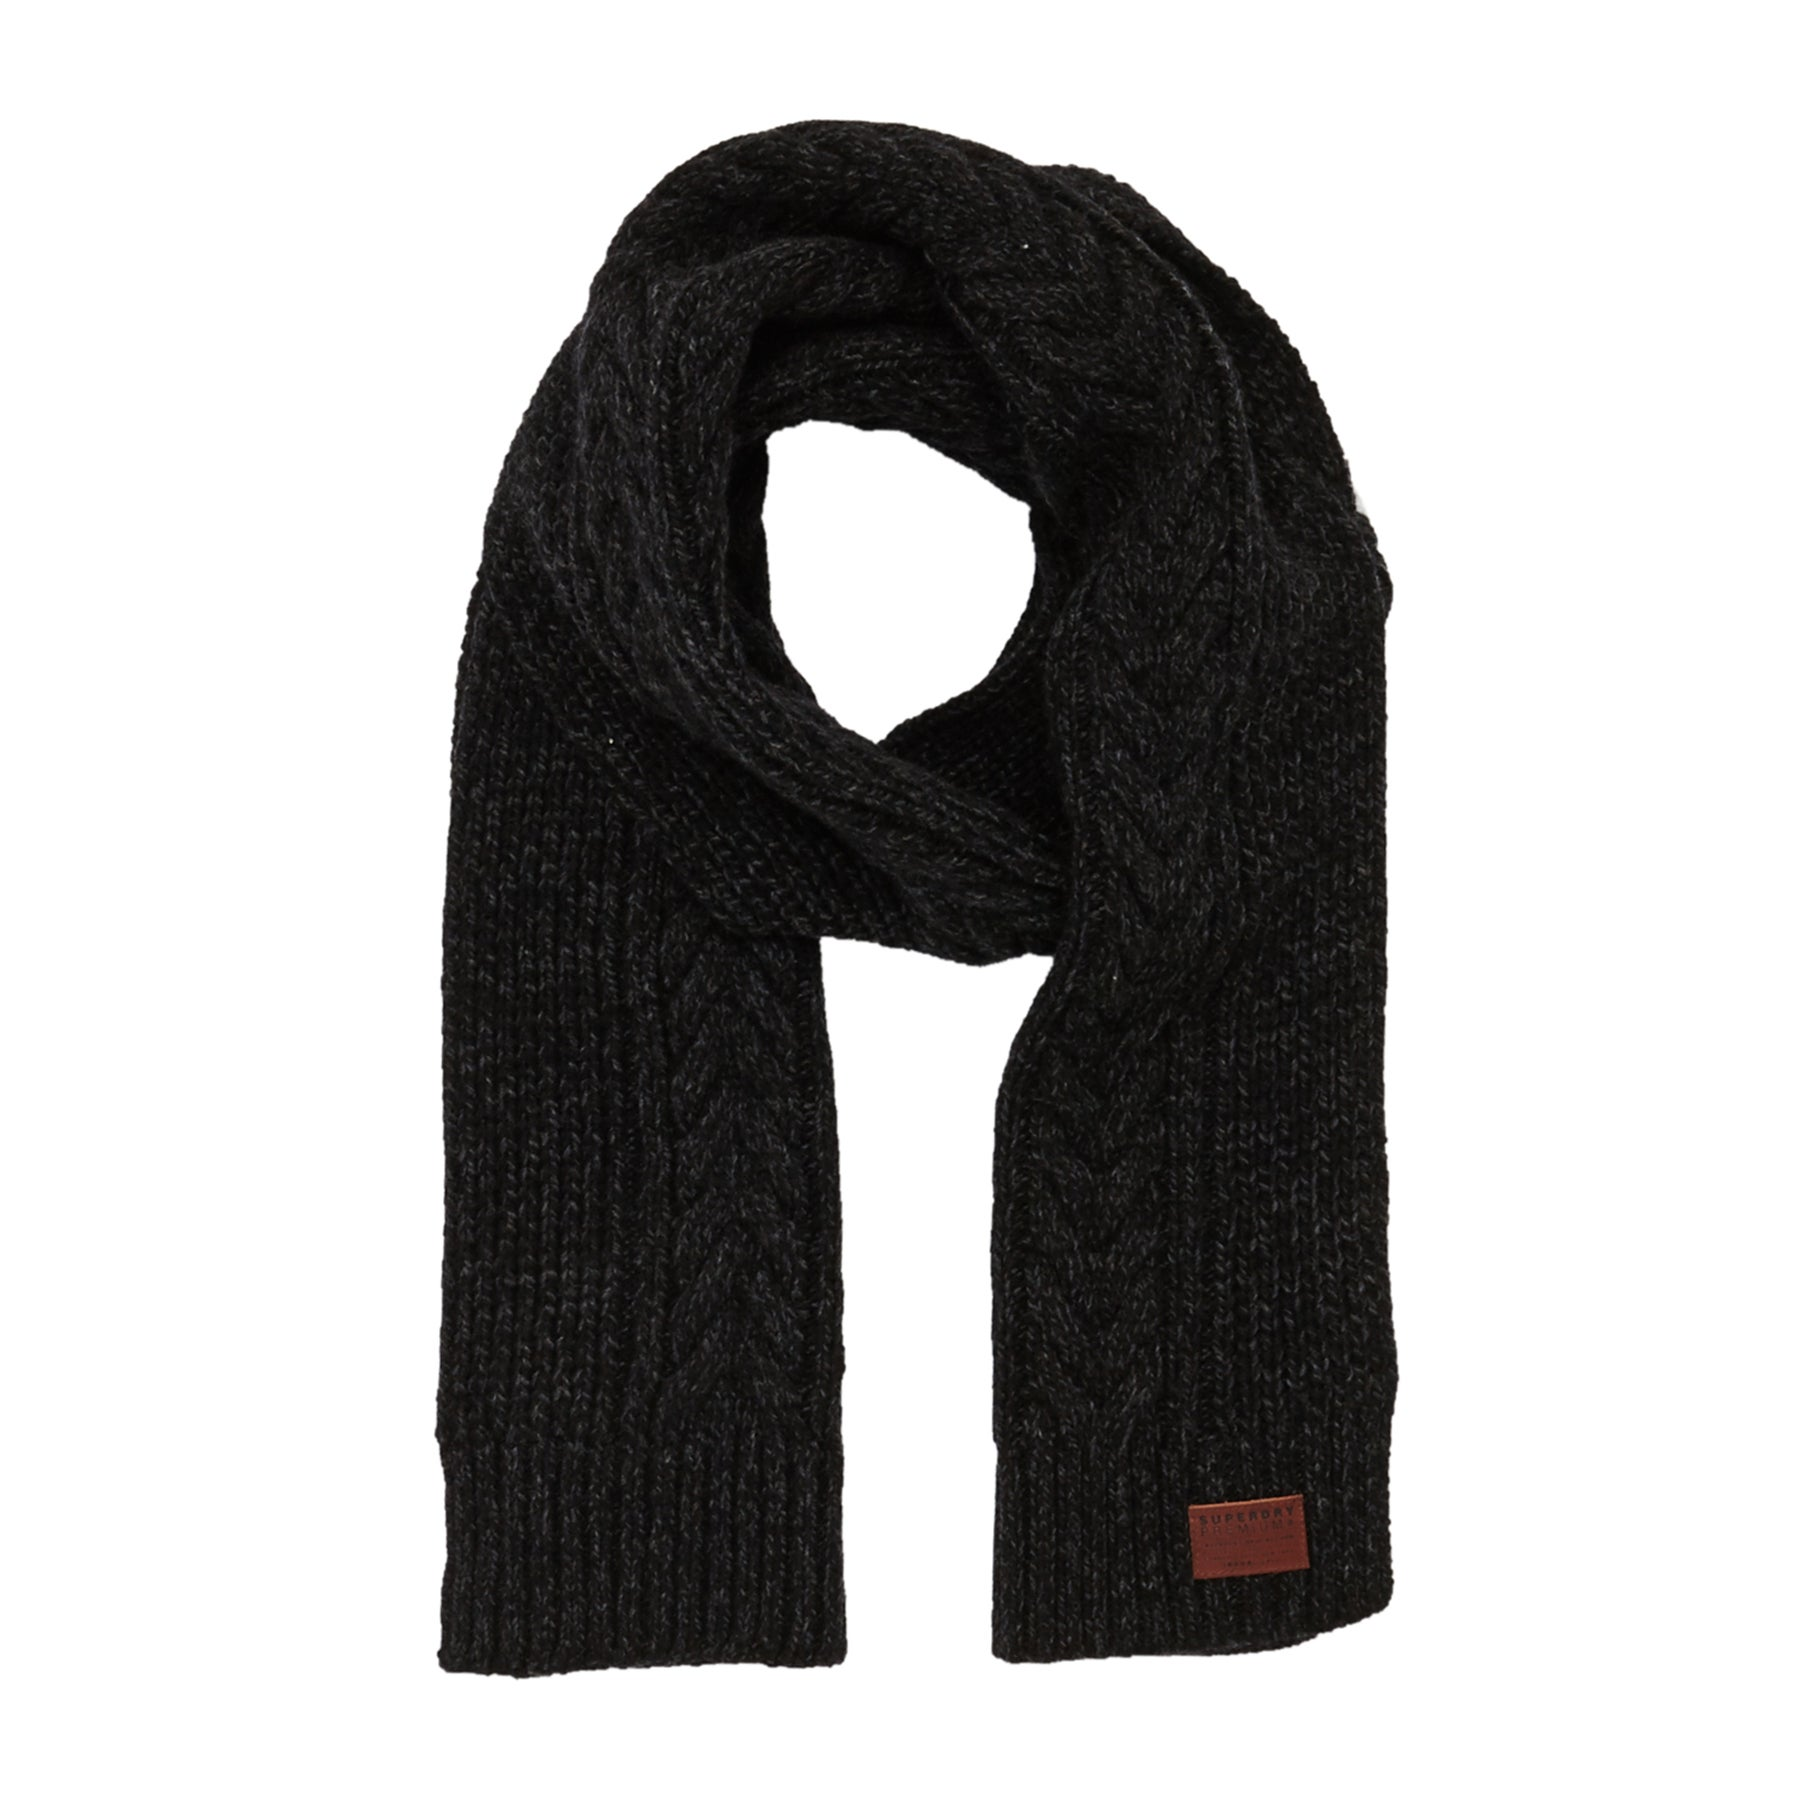 Superdry Jacob Scarf - Blackfriar Twist